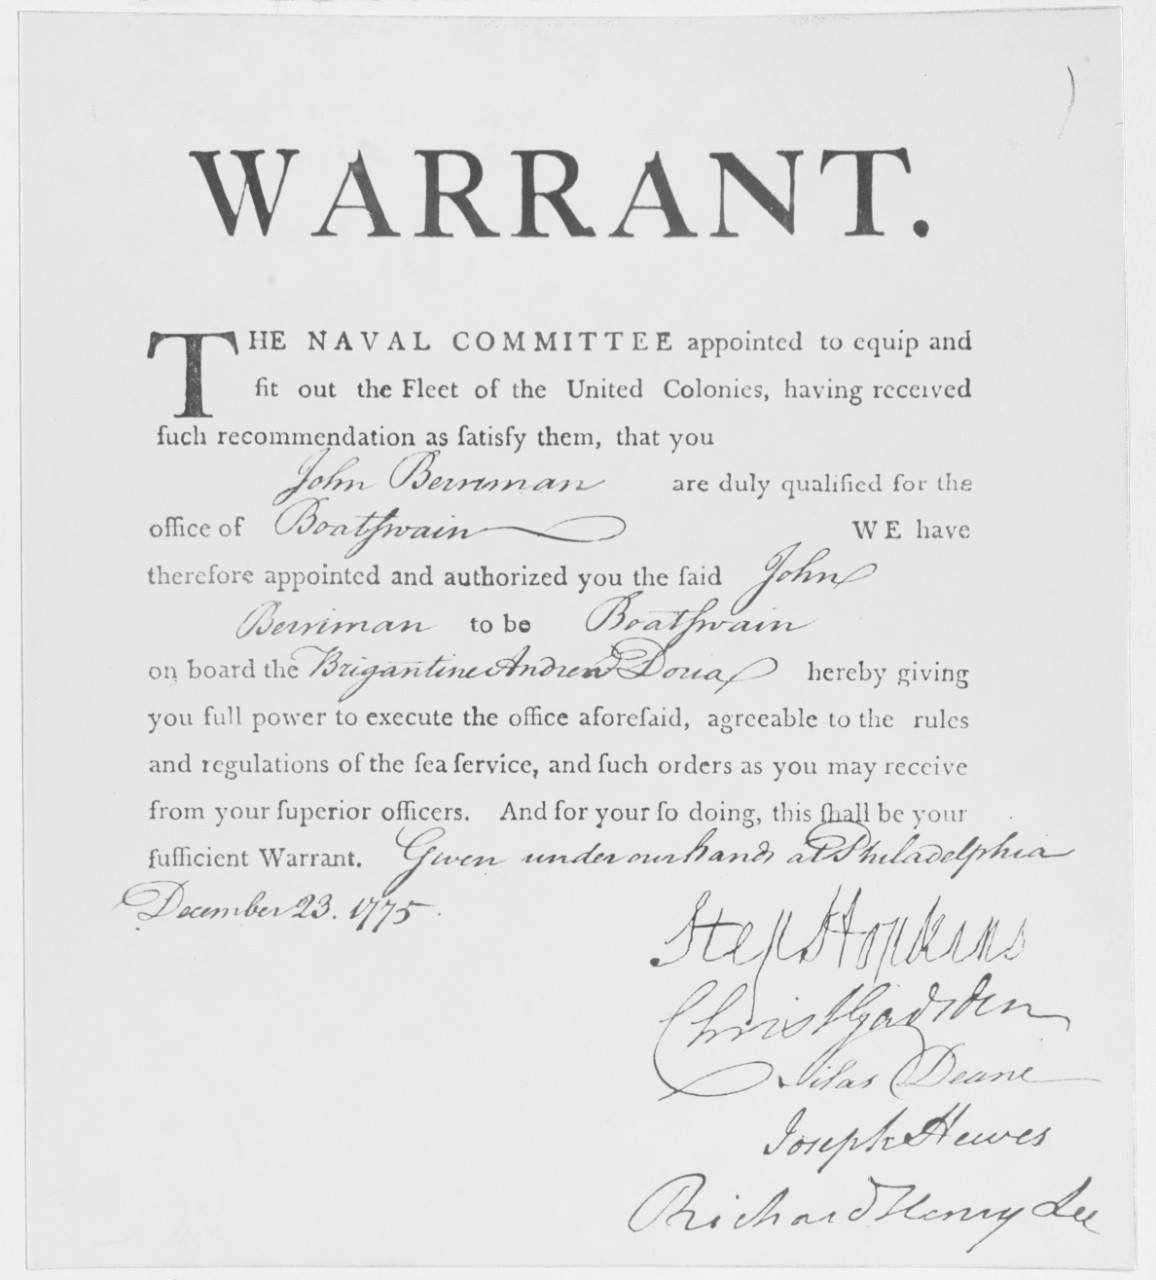 First CWO Warrant